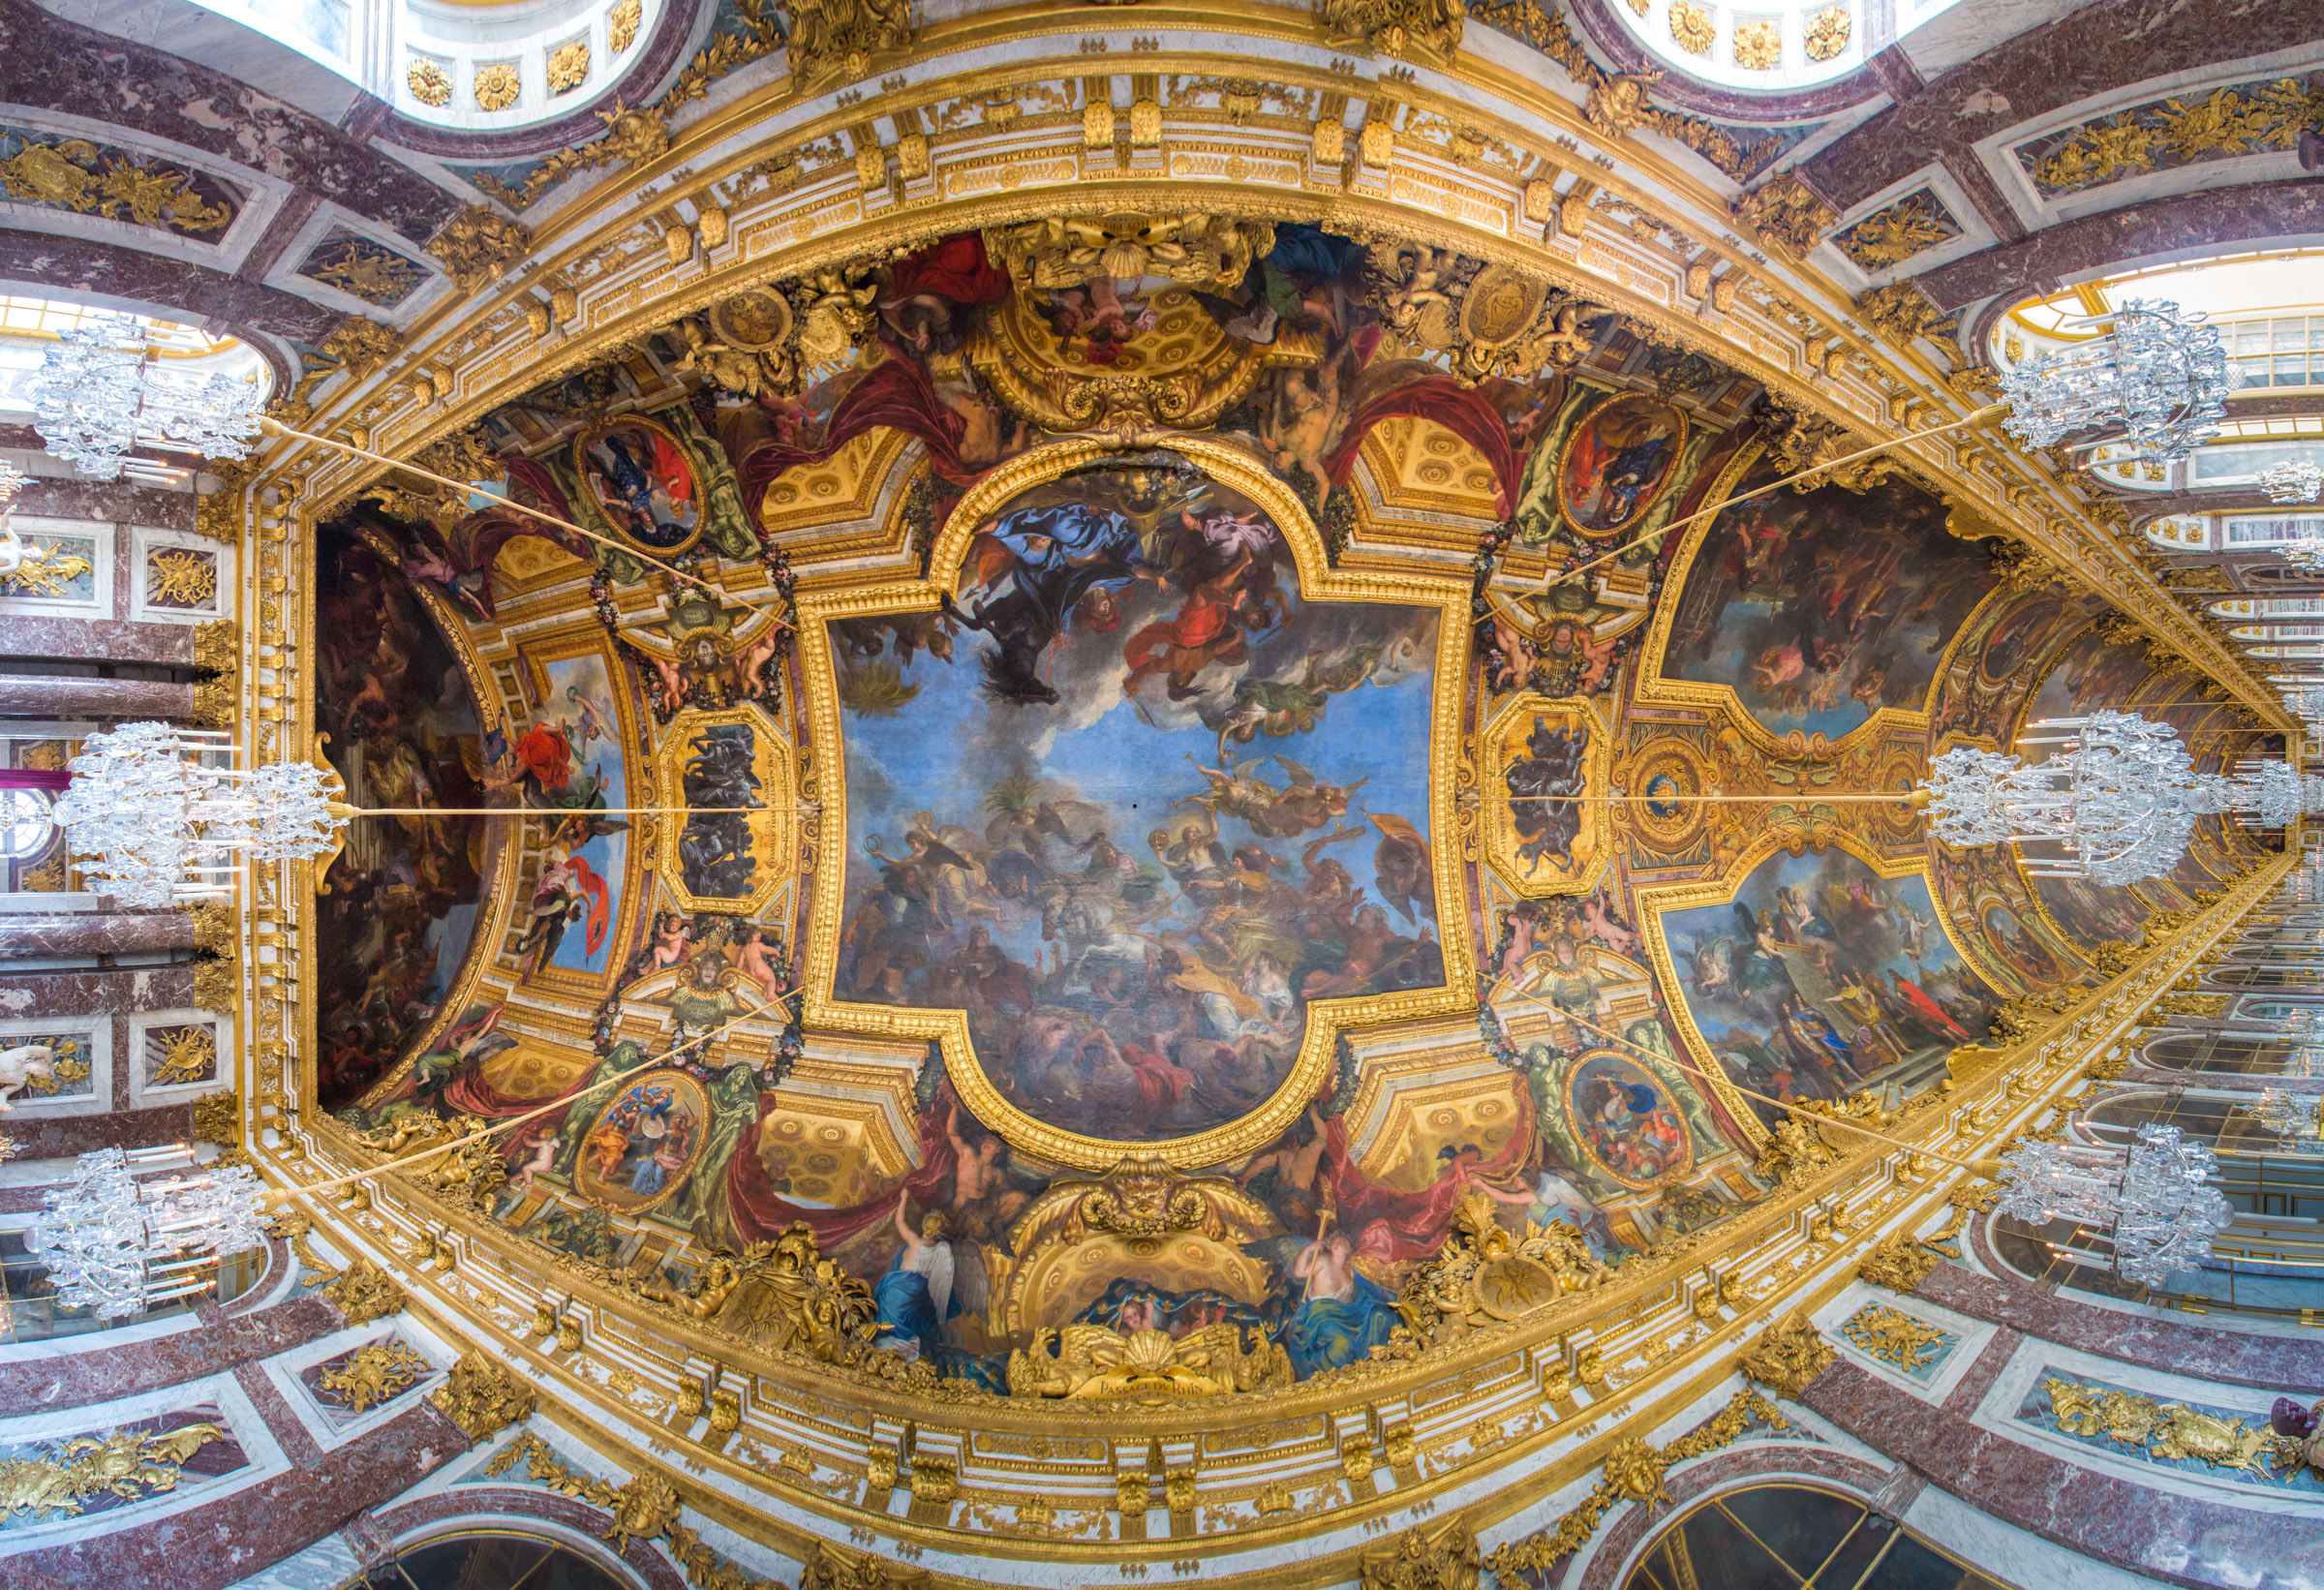 Panoramic Photo Of The Hall Of Mirrors Ceiling In Versailles France Woahdude